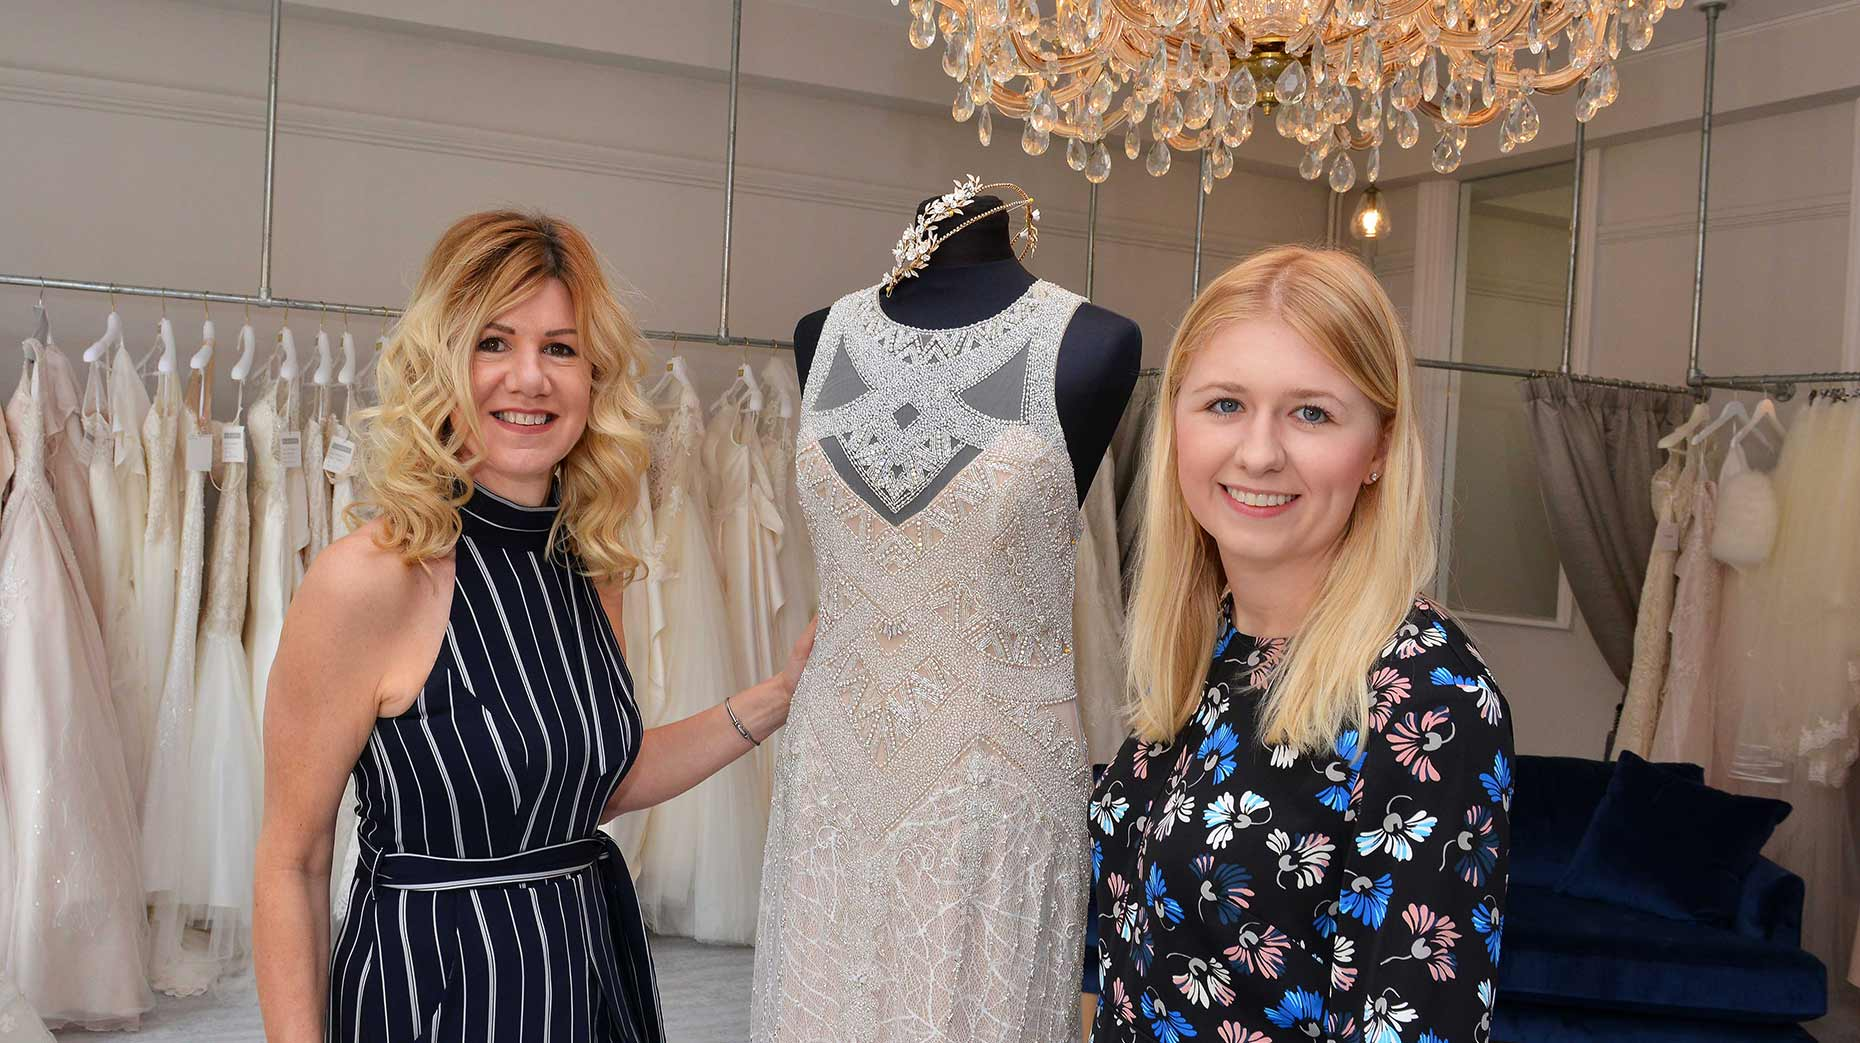 a14d26c796ea New Lincoln bridal boutique ready to dazzle customers at The Lawn